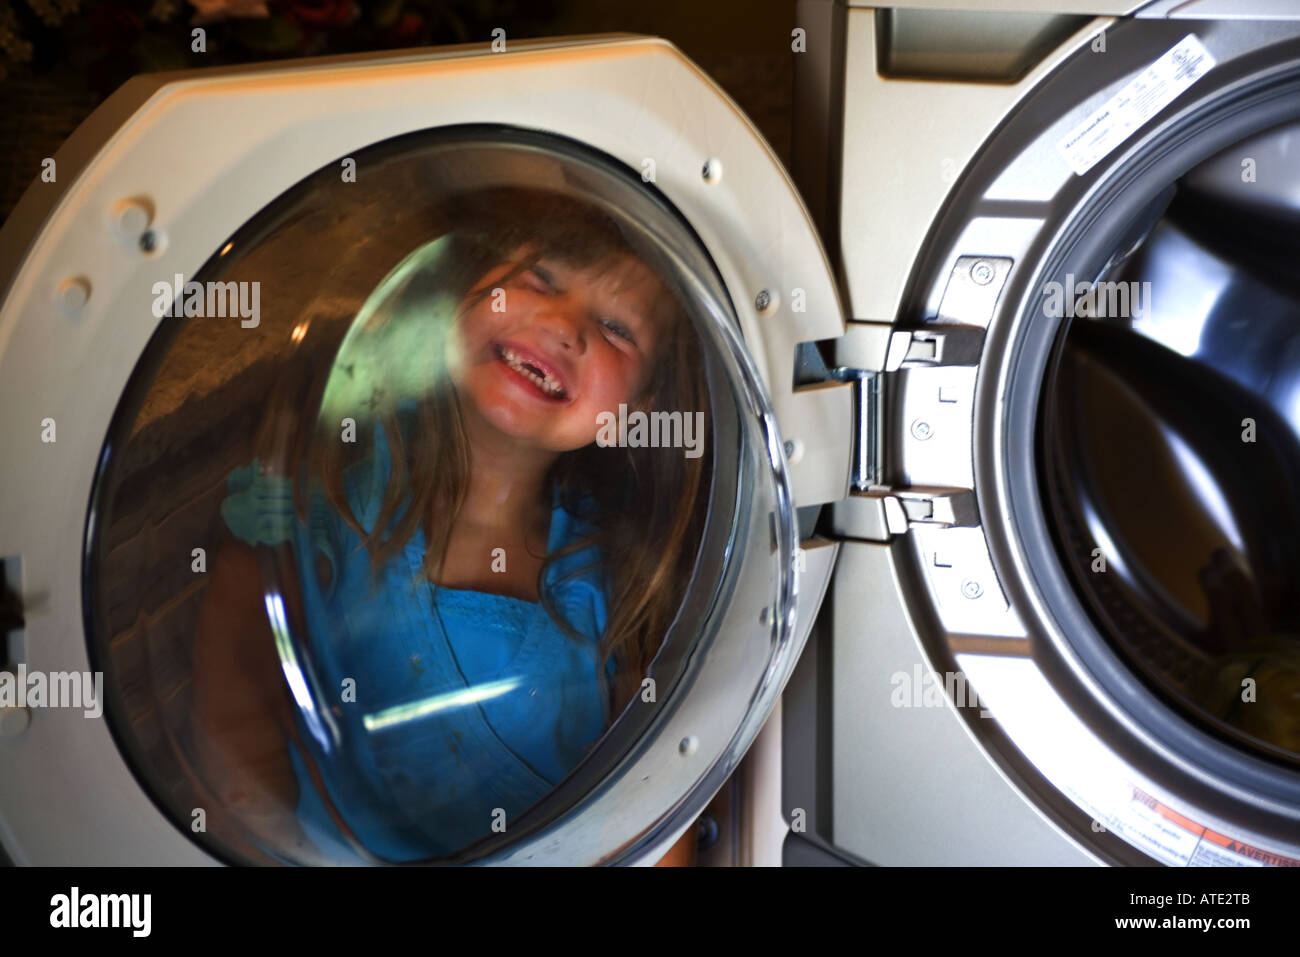 Little girl seen through open door of washing machine - Stock Image